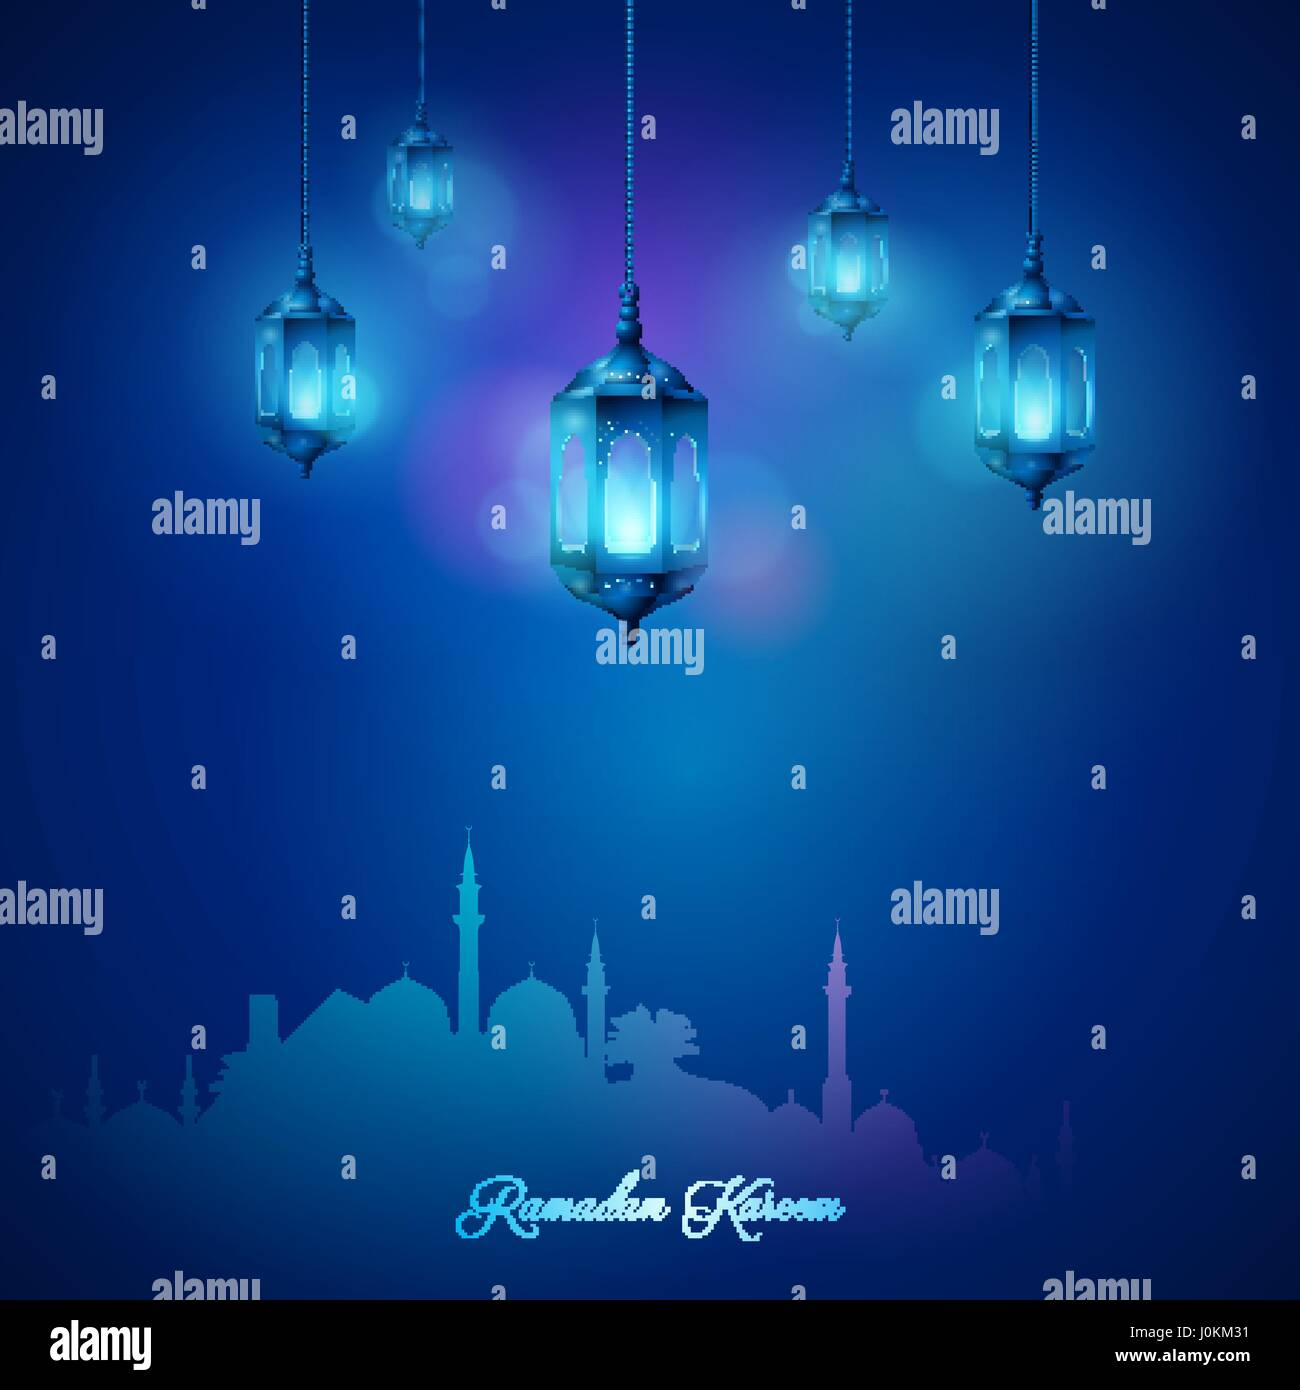 Mosque background for ramadan kareem stock photography image - Arabic Lamp And Mosque Islamic Celebration Greeting Background Ramadan Kareem